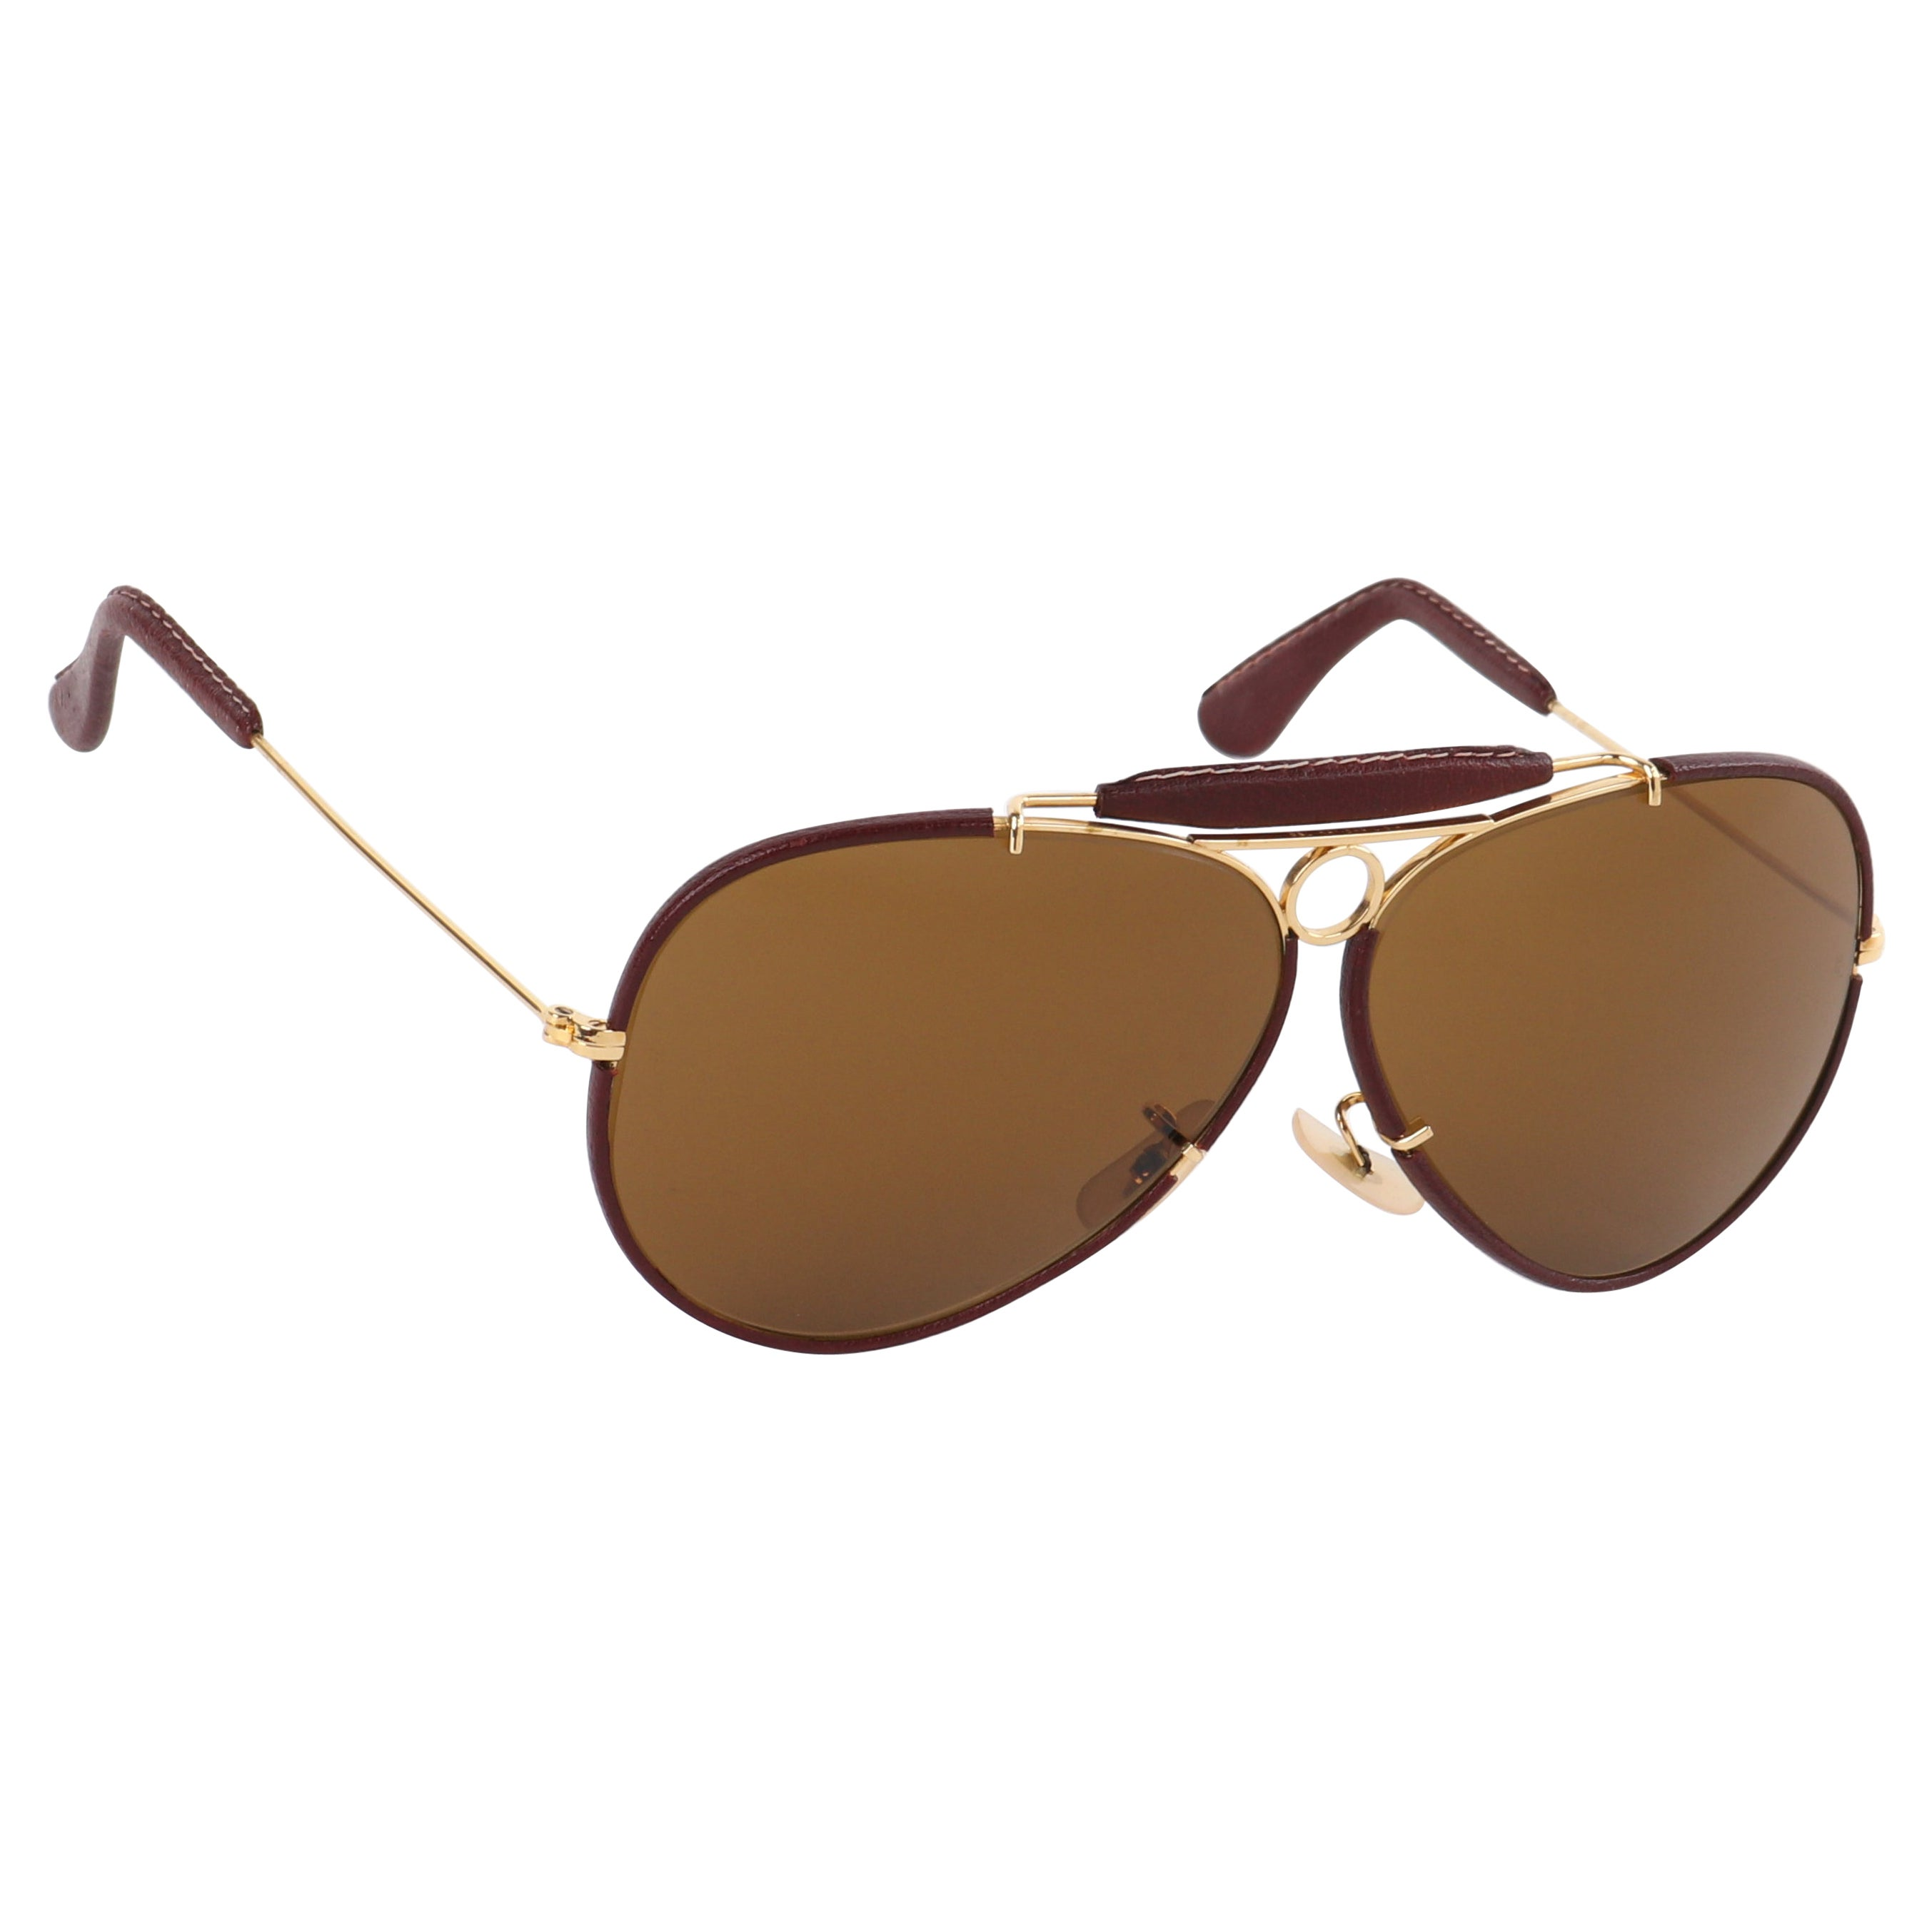 RAY BAN Bausch & Lomb c.1970's Gold Burgundy Leather Aviator Shooter Sunglasses